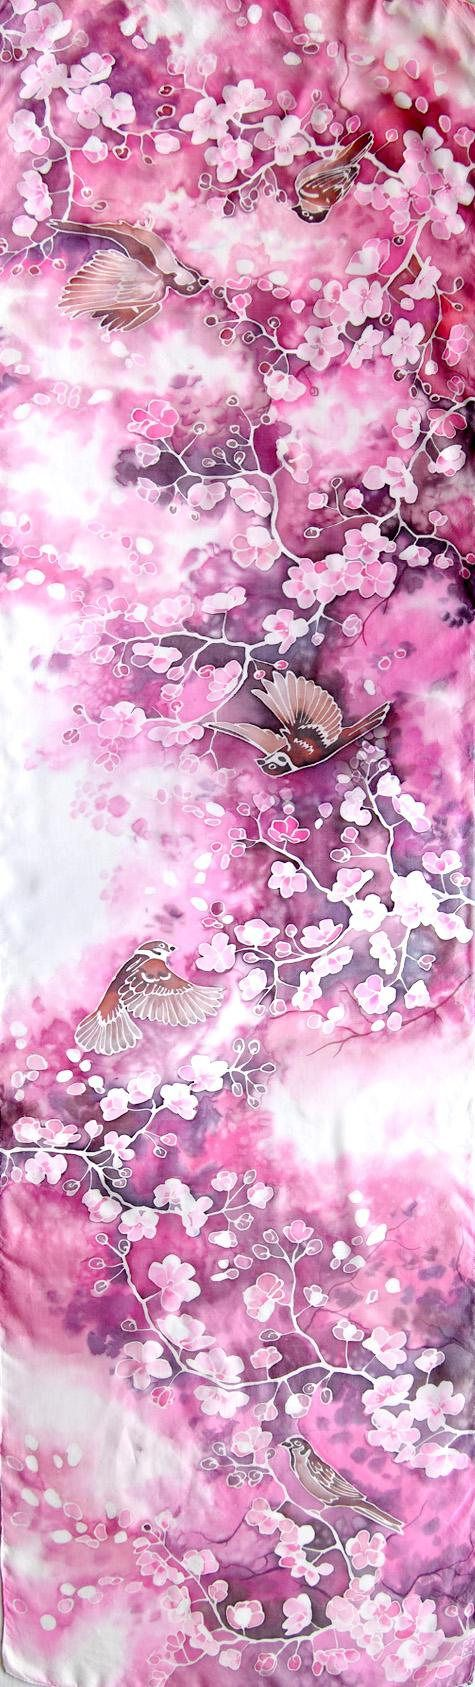 Cherry blossom scarf - sparrows birds scarf - animal art spring scarves pink scarf hand painted sakura tree japan style gift for mom for the Mothers Day Cherry blossom scarf is a hand painted scarves with a design of flying sparrows birds and sakura tree. It is painted as a spring time gift